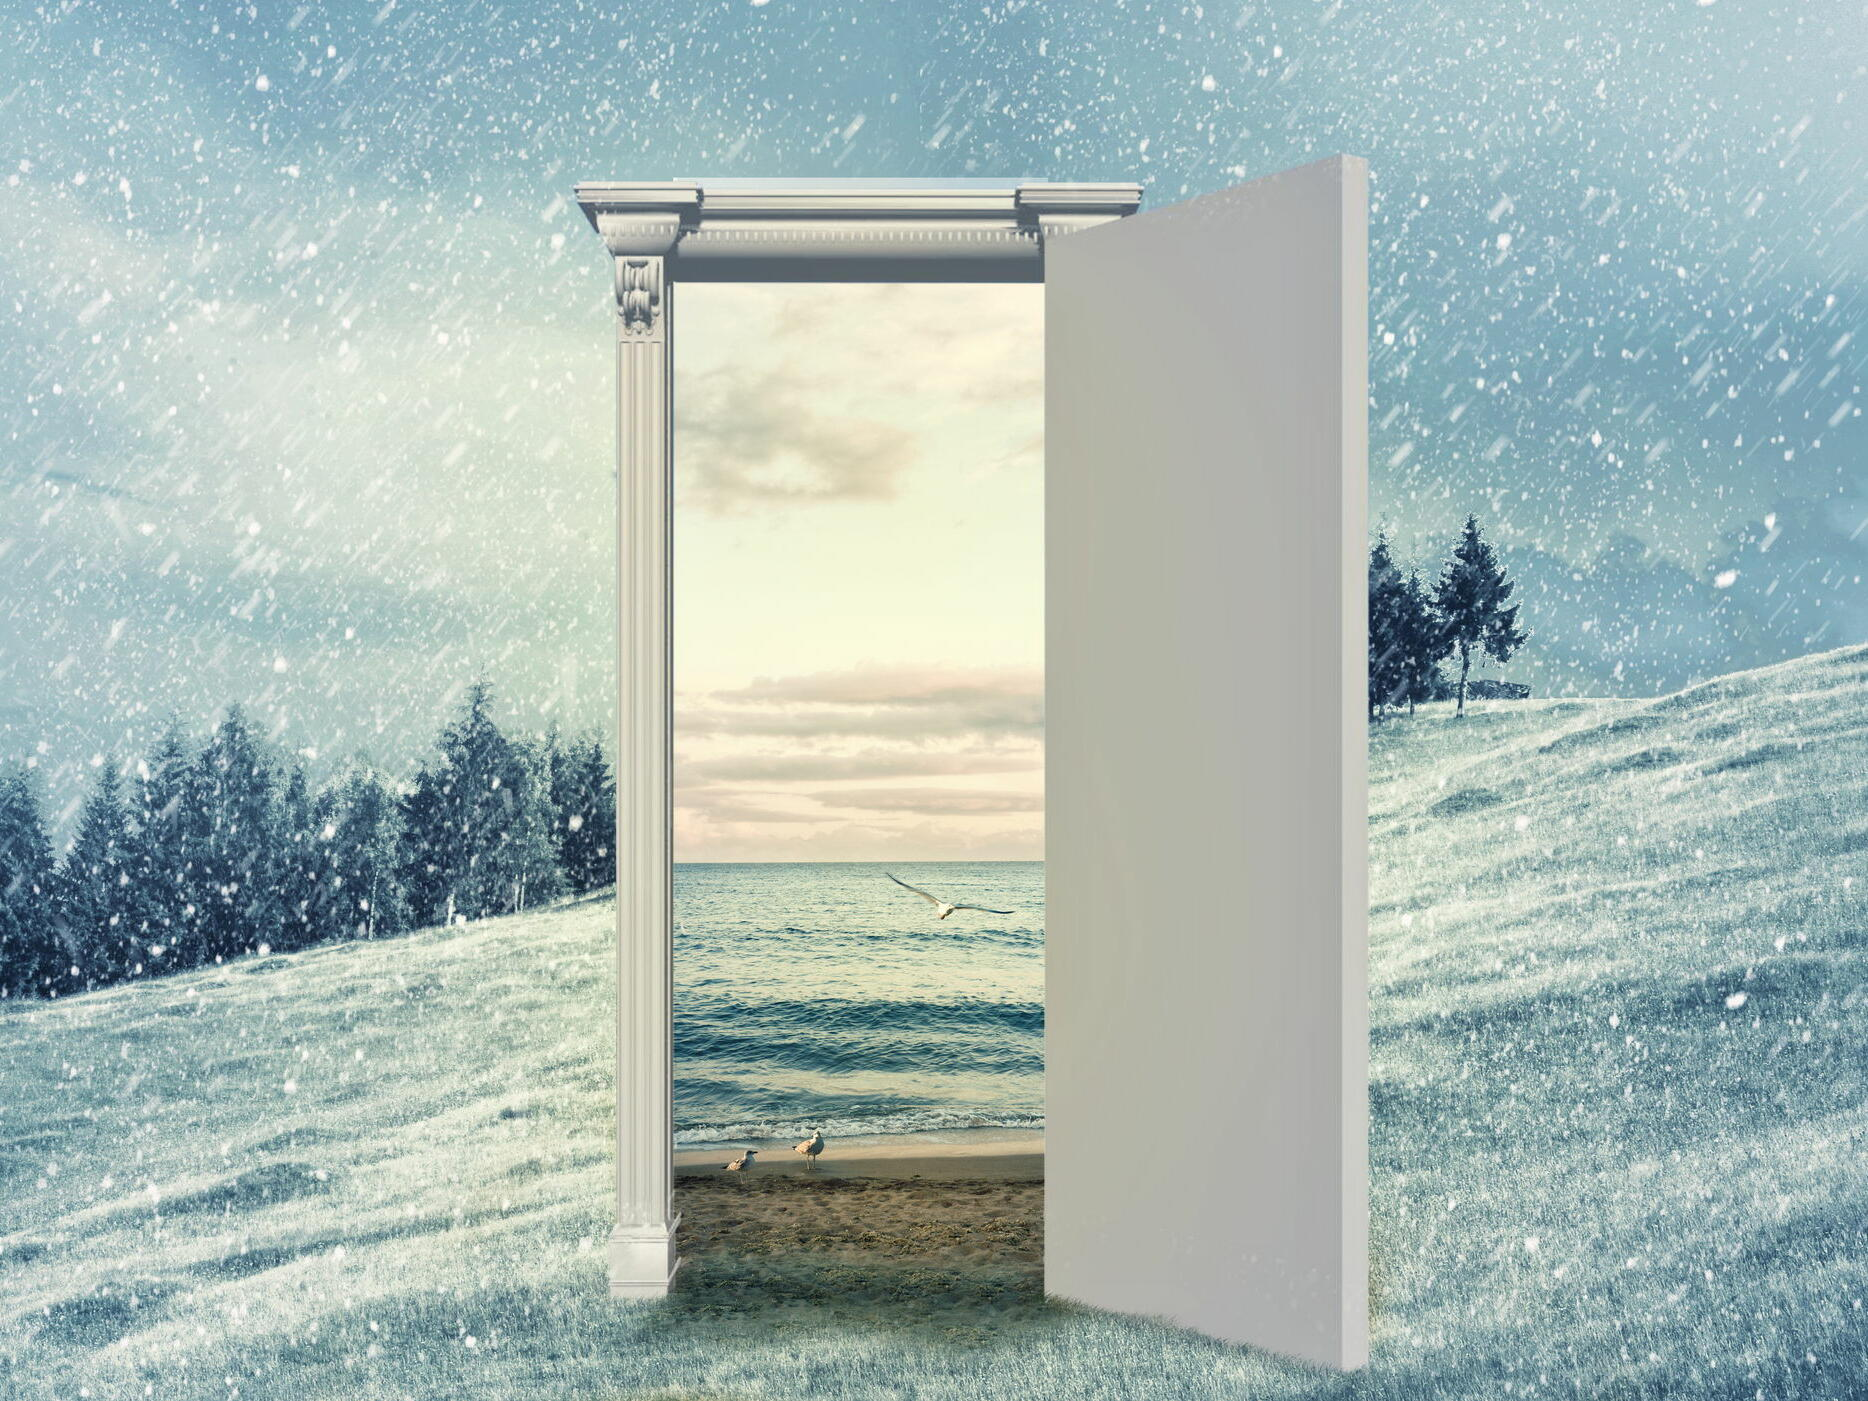 door in the middle of snowy mountain with view to beach